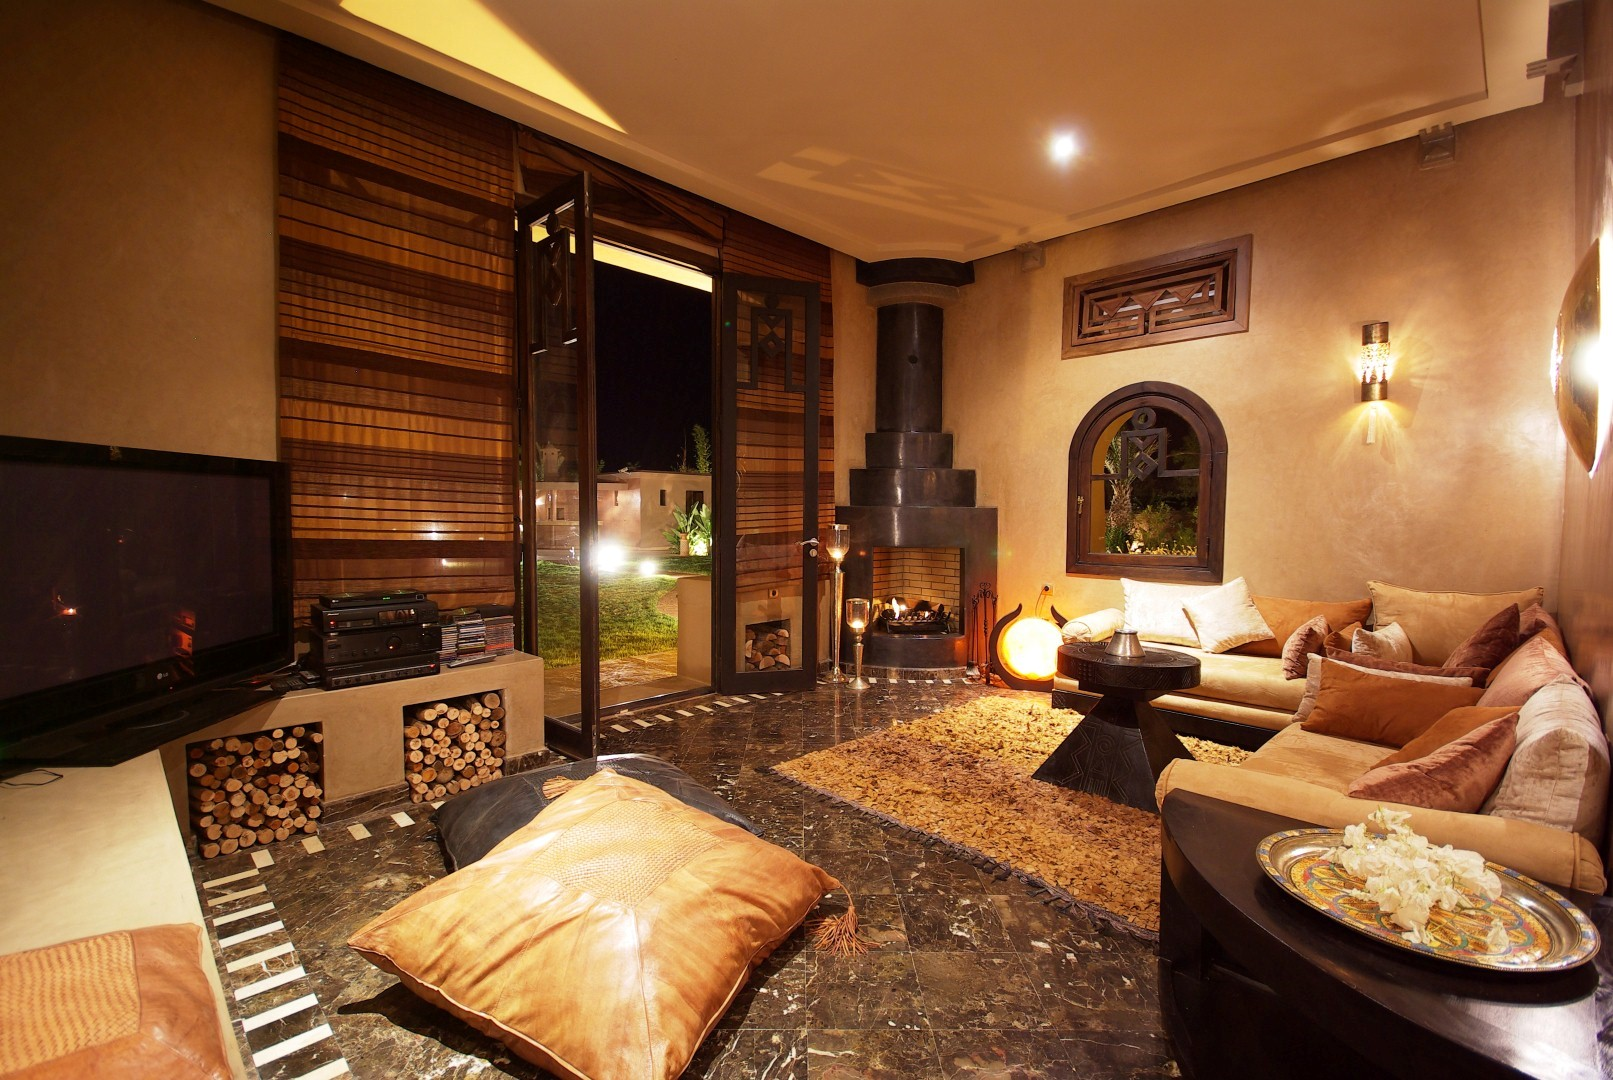 villa r ve d 39 orient superbe villa louer marrakech viaprestige marrakech. Black Bedroom Furniture Sets. Home Design Ideas